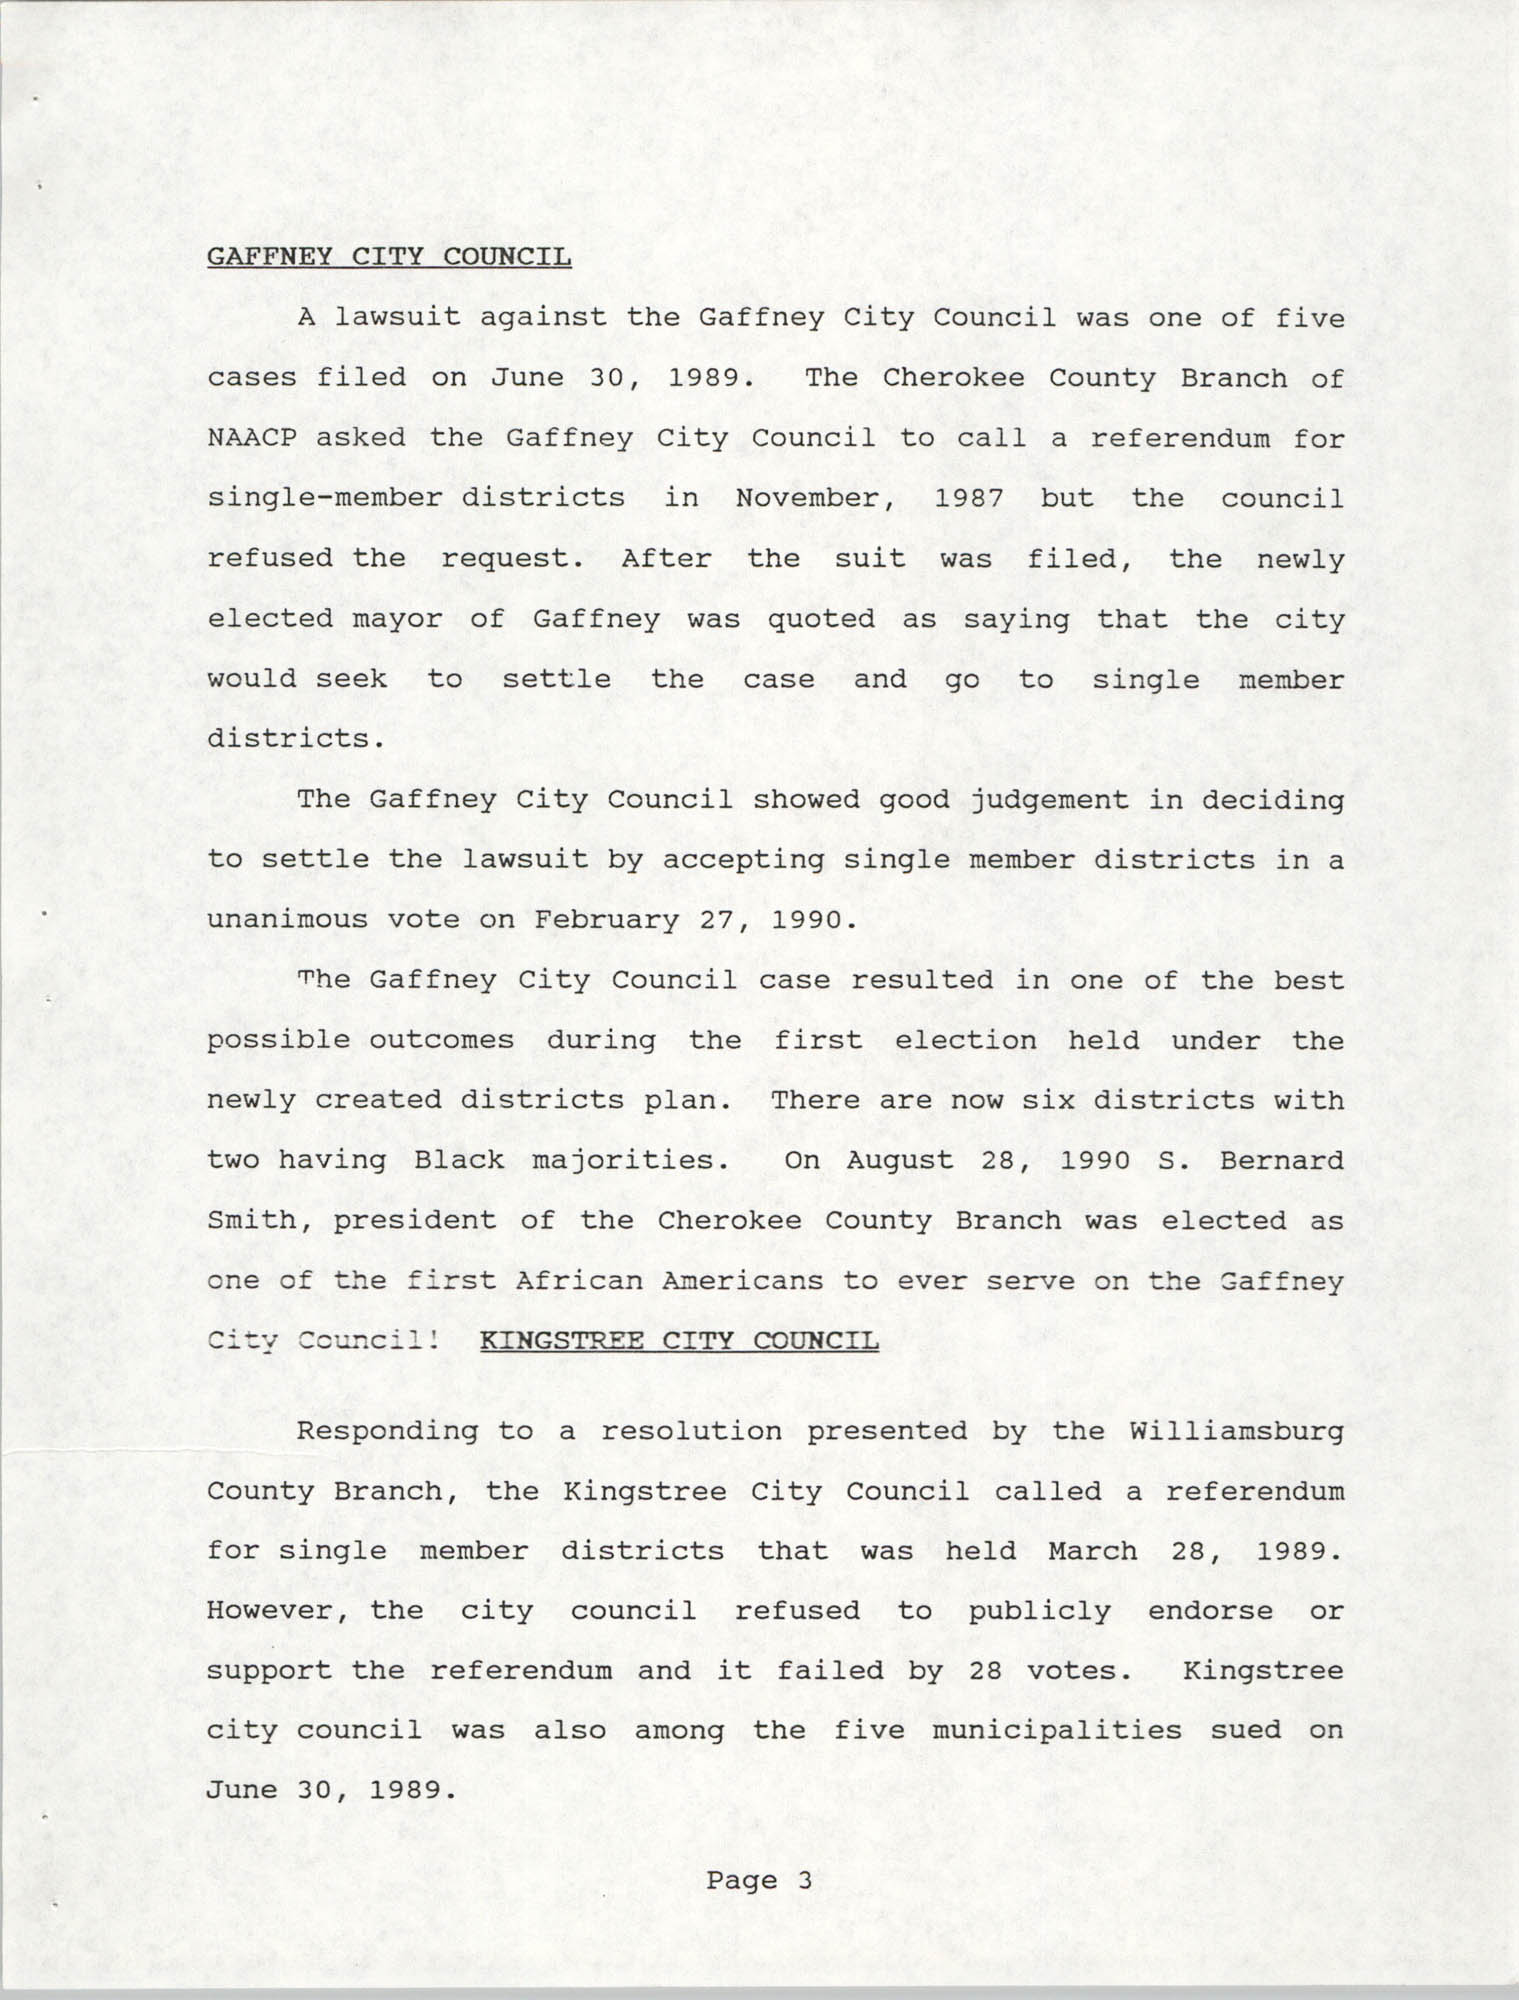 South Carolina Conference of Branches of the NAACP, 1990 Annual Report, Part One, Page 3